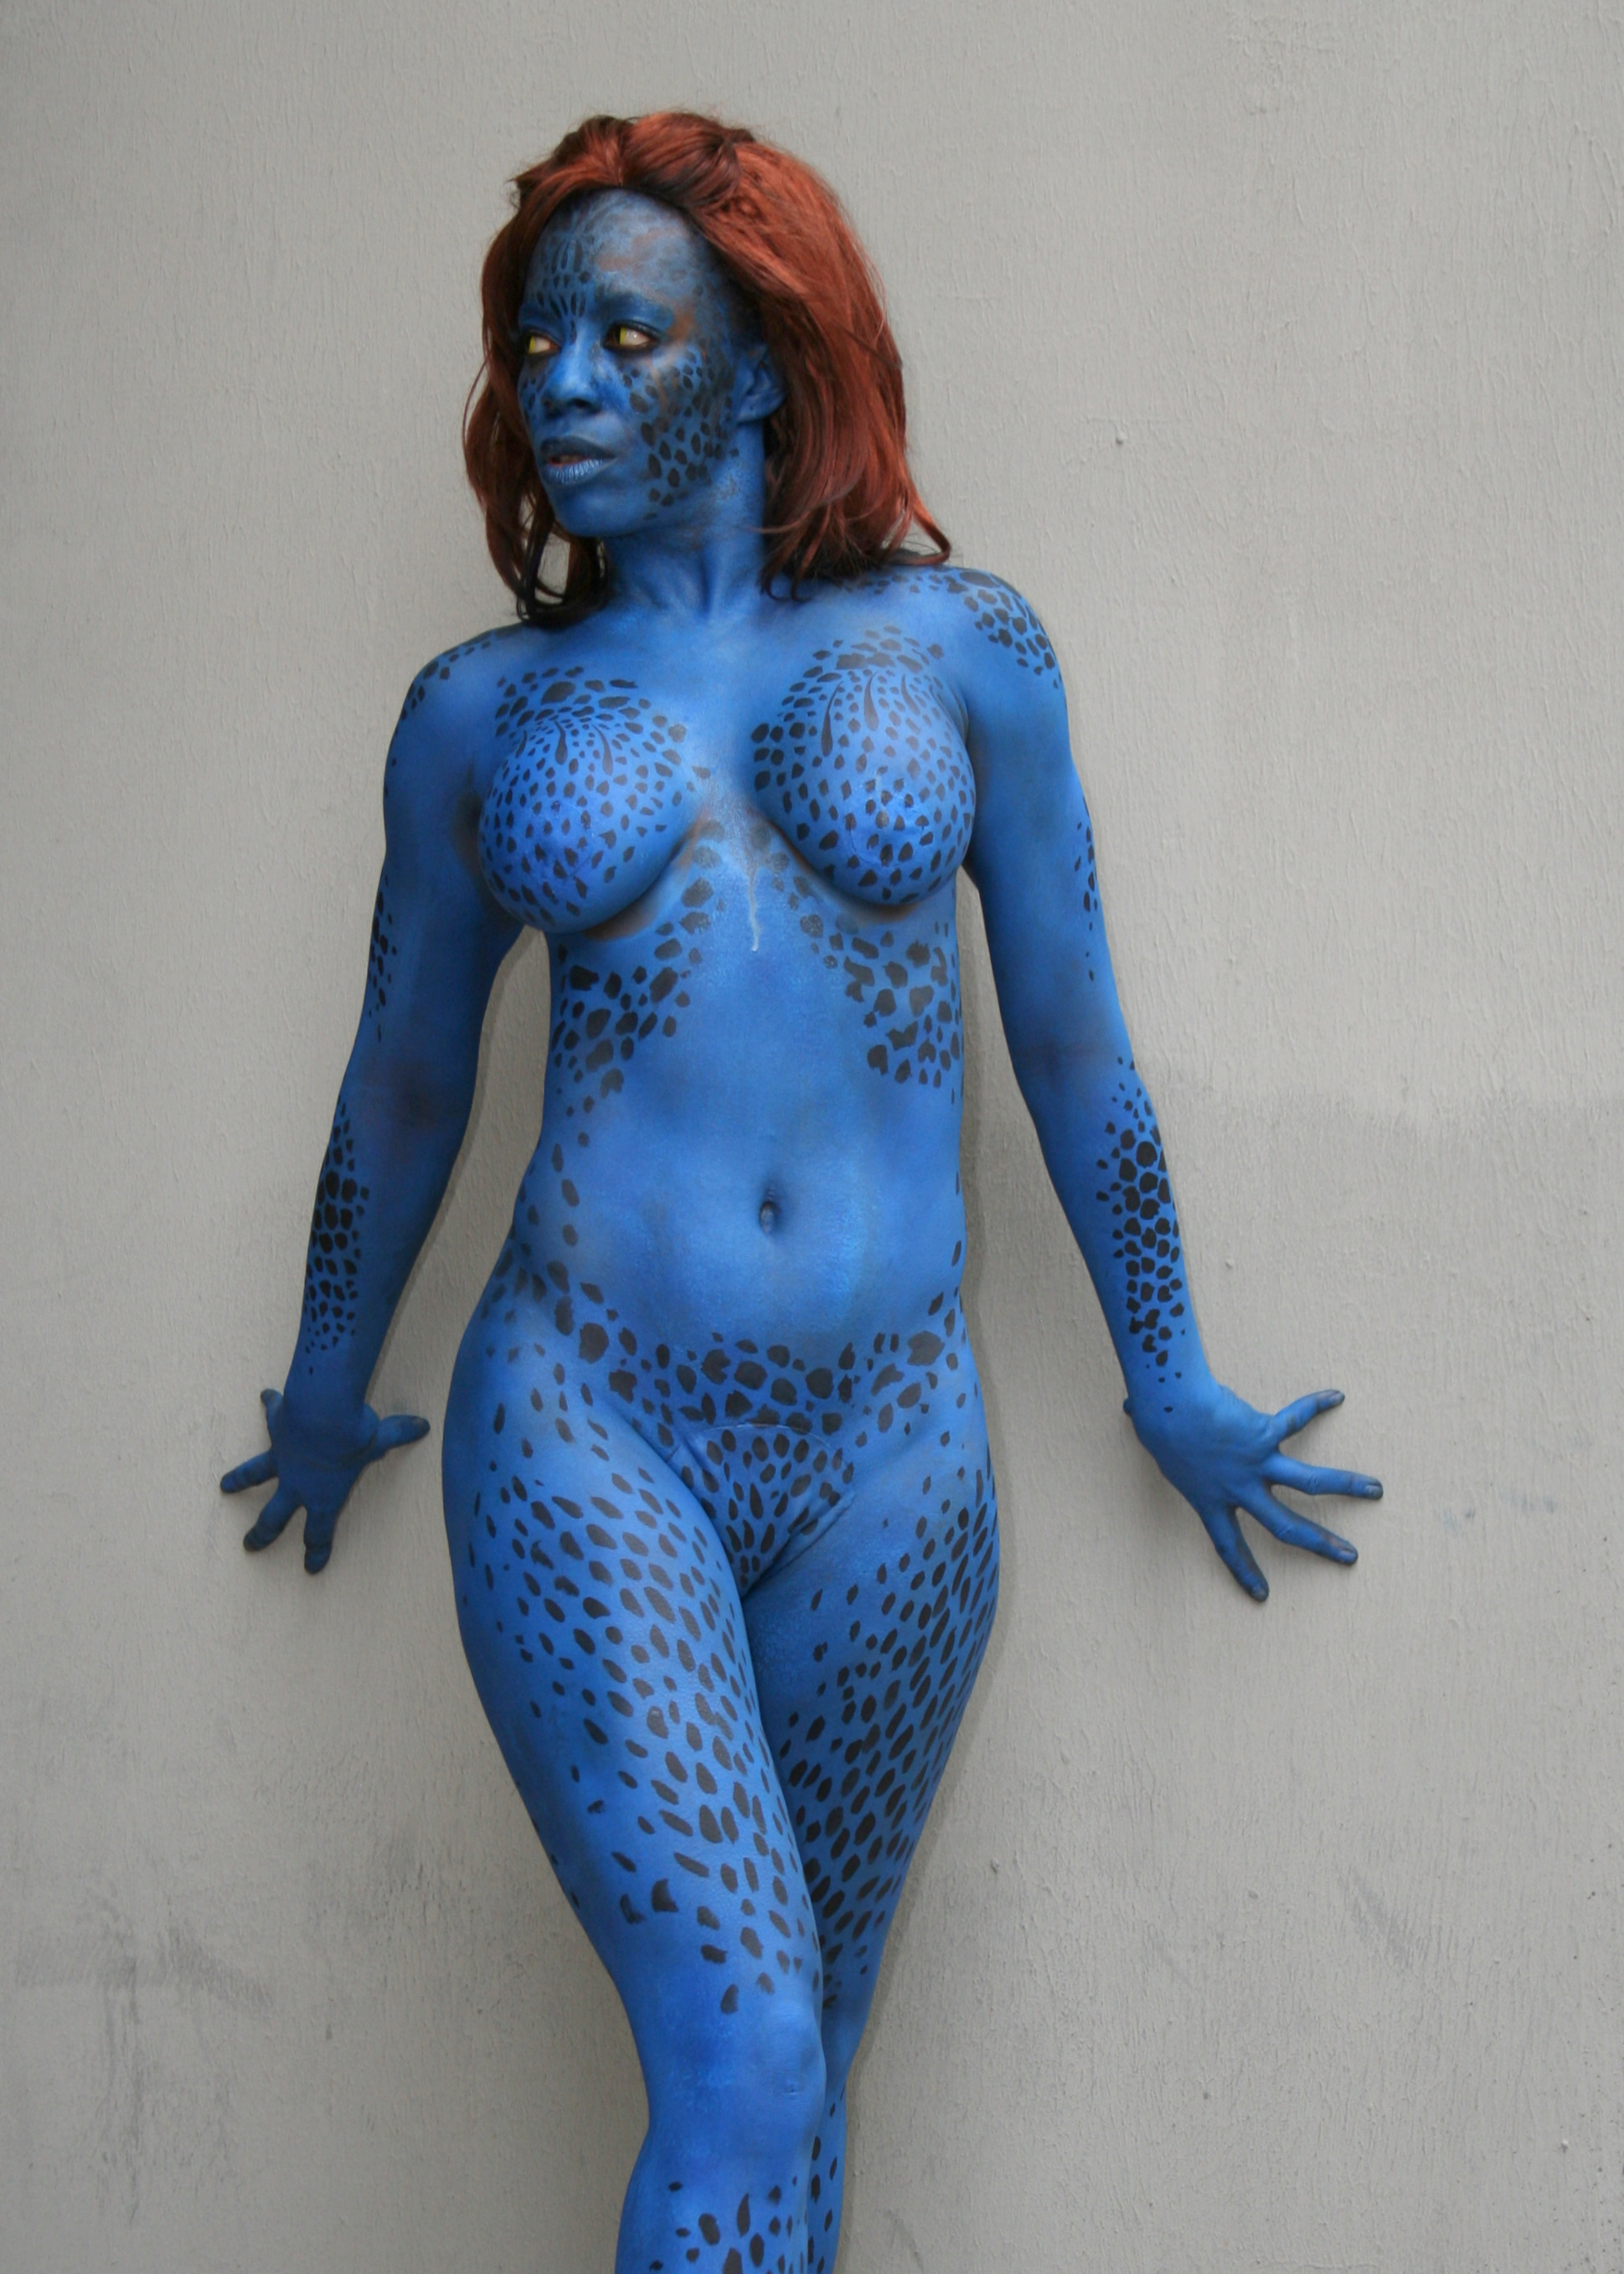 Can X men mystique porn well understand